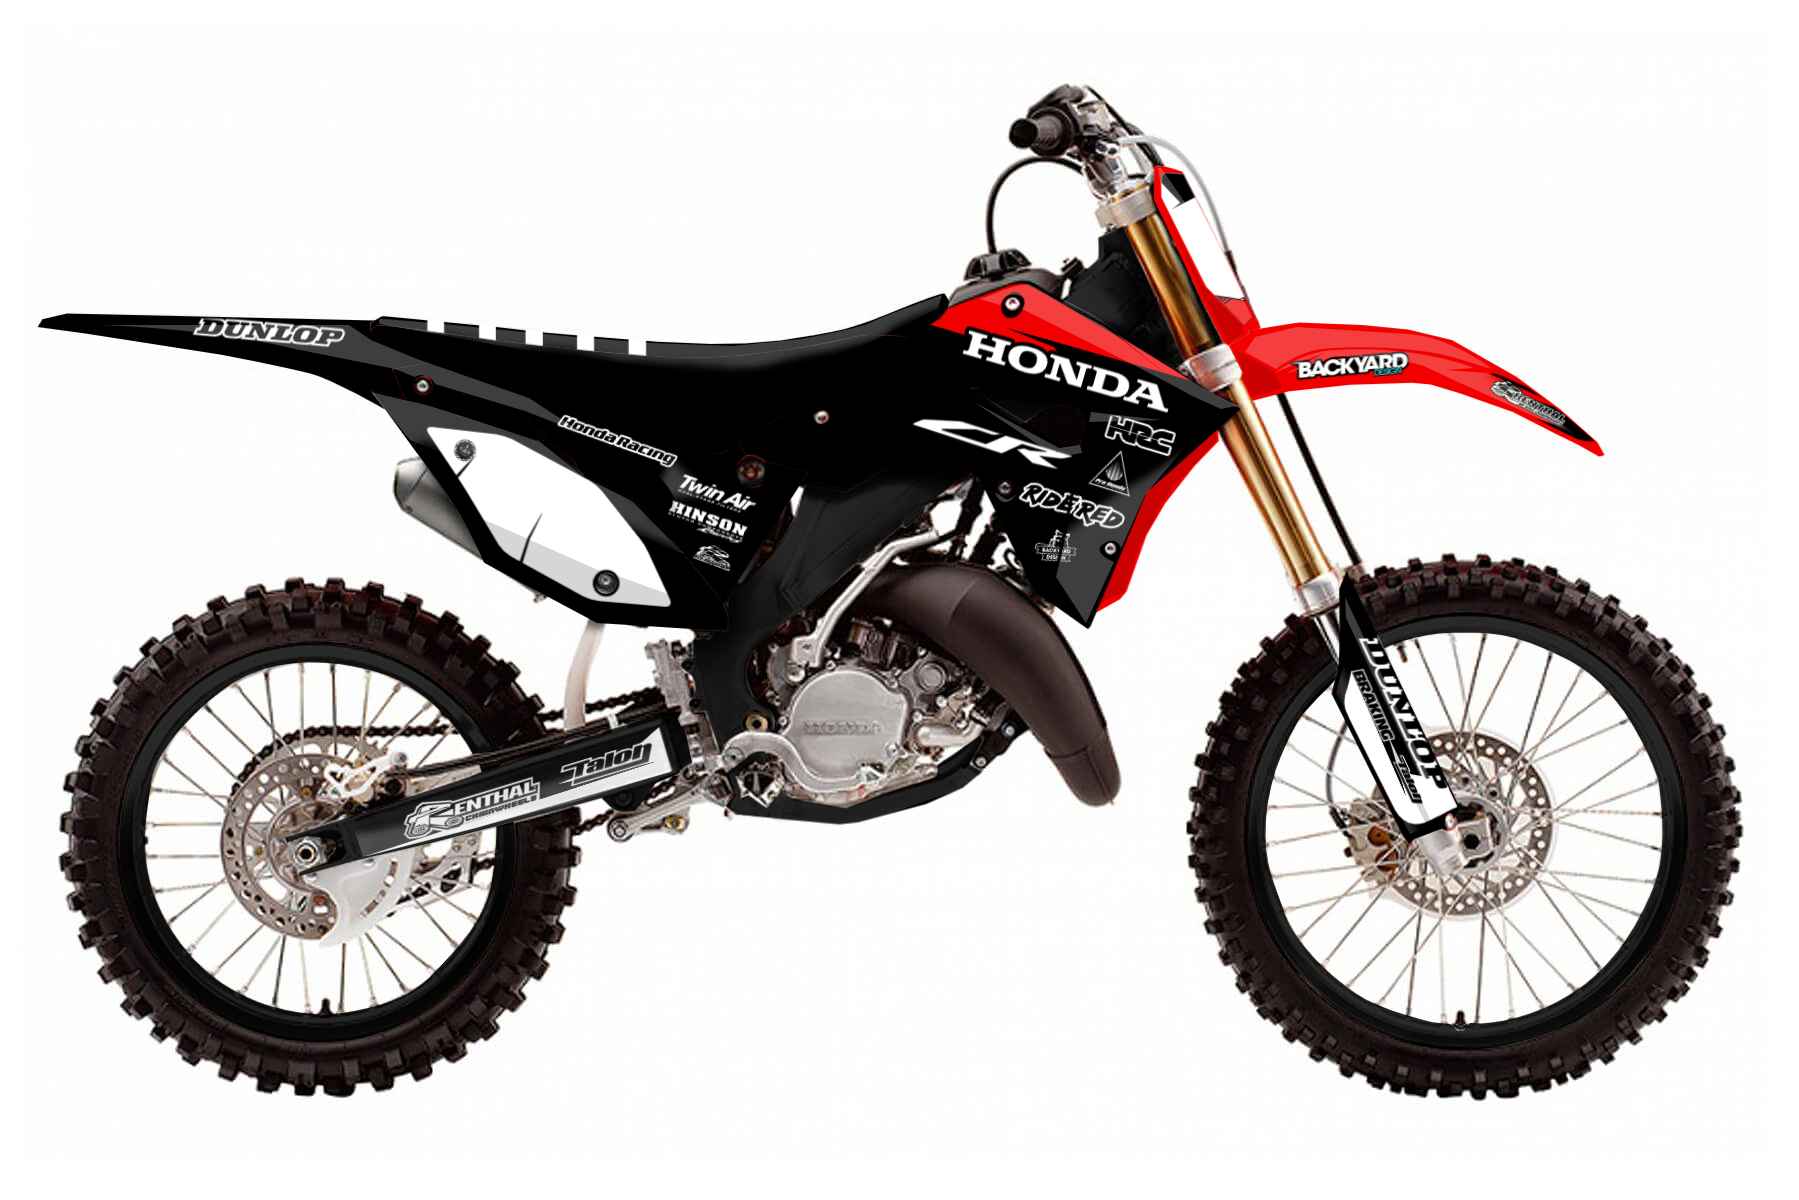 Honda CR 250 – Polisport Restyle MX Graphic Kits  Your CR 250 looks good with the polisport restyle kit. Only thing missing is one of our graphic kits. With a few clicks you can find the perfect design for your graphics.